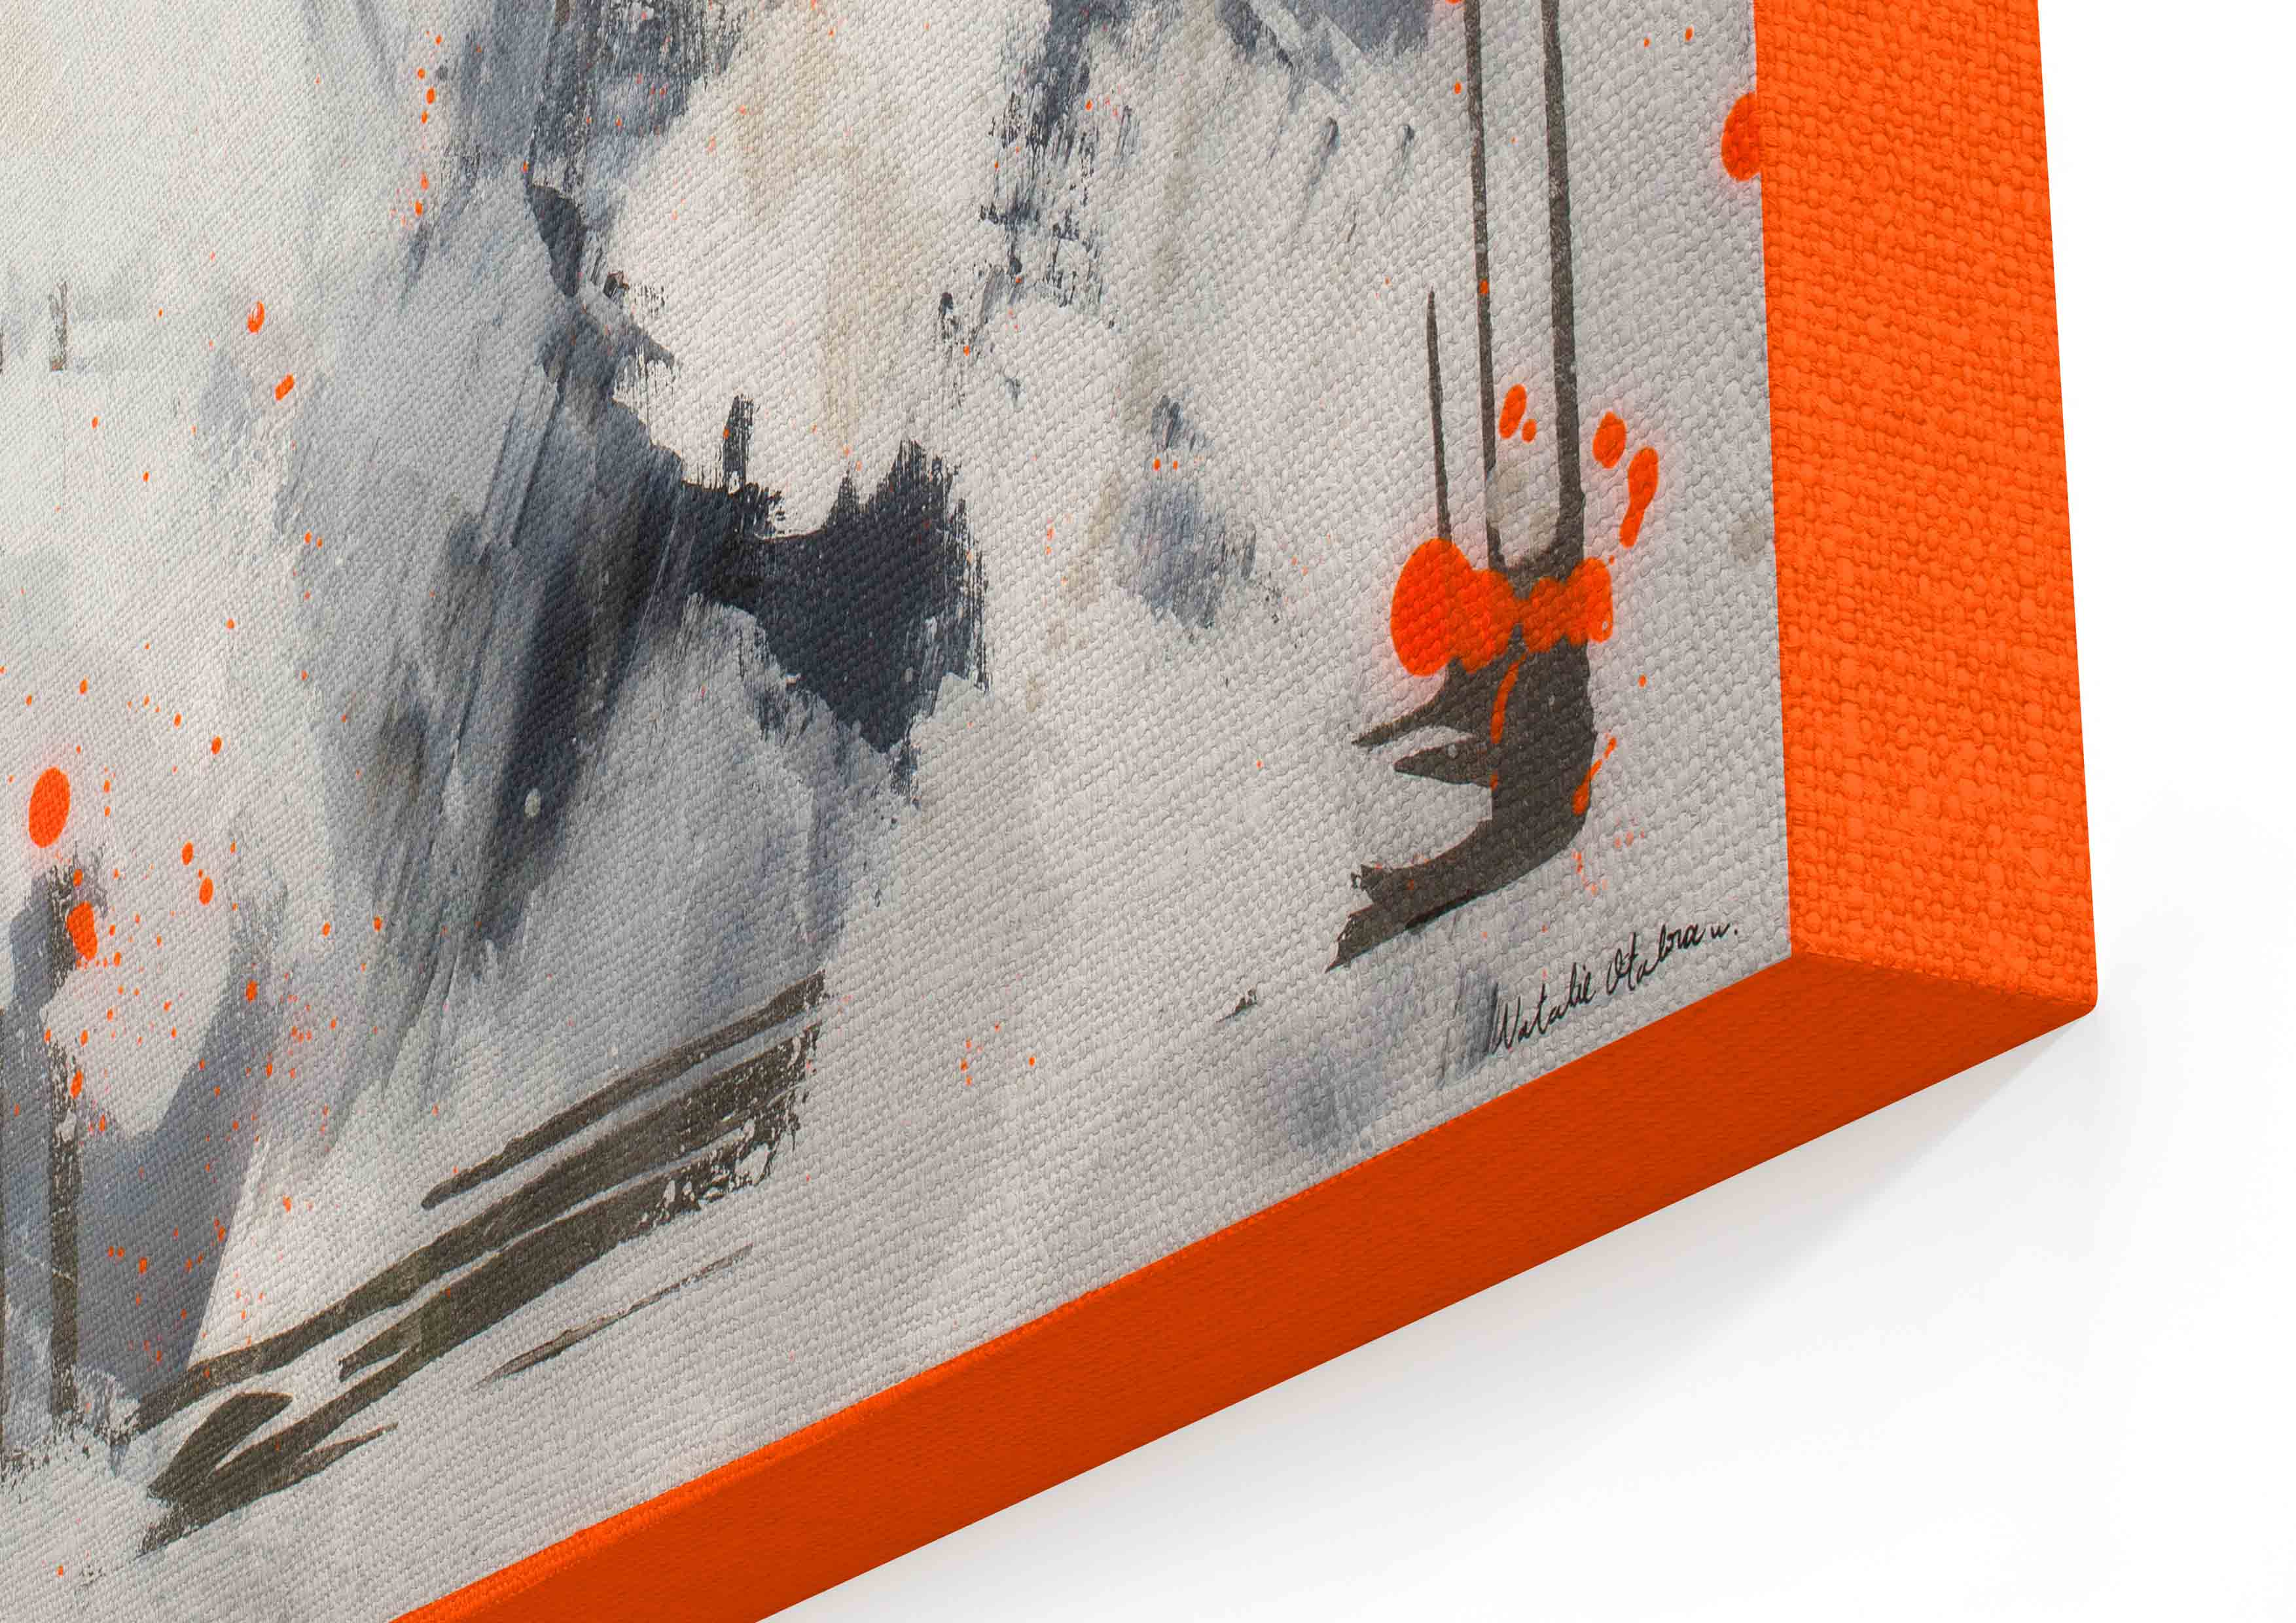 ART-PAINT-CHANEL-PERFUME-FIFTY-SHADES-CANVAS-DETAIL-3